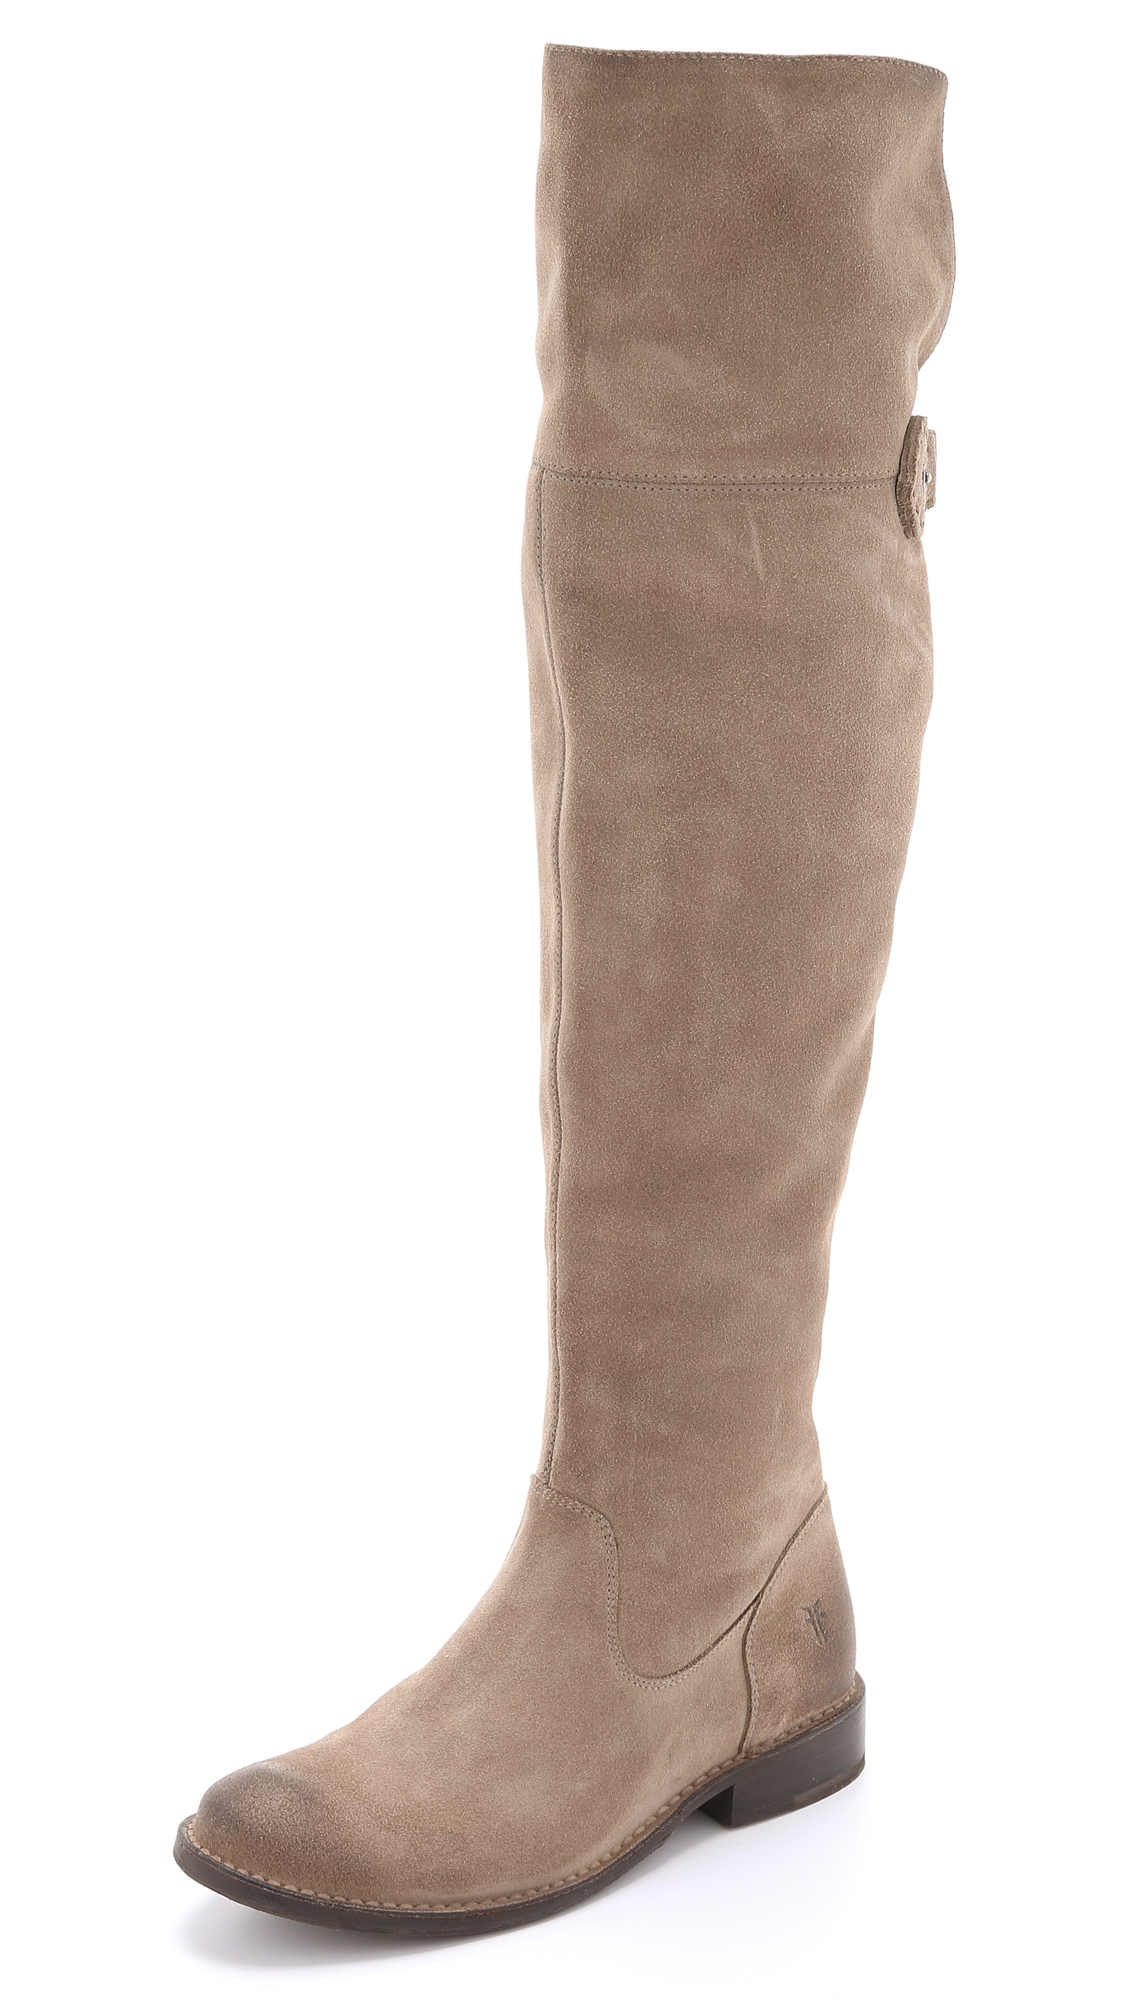 Frye Shirley Suede Over The Knee Boots - Ash